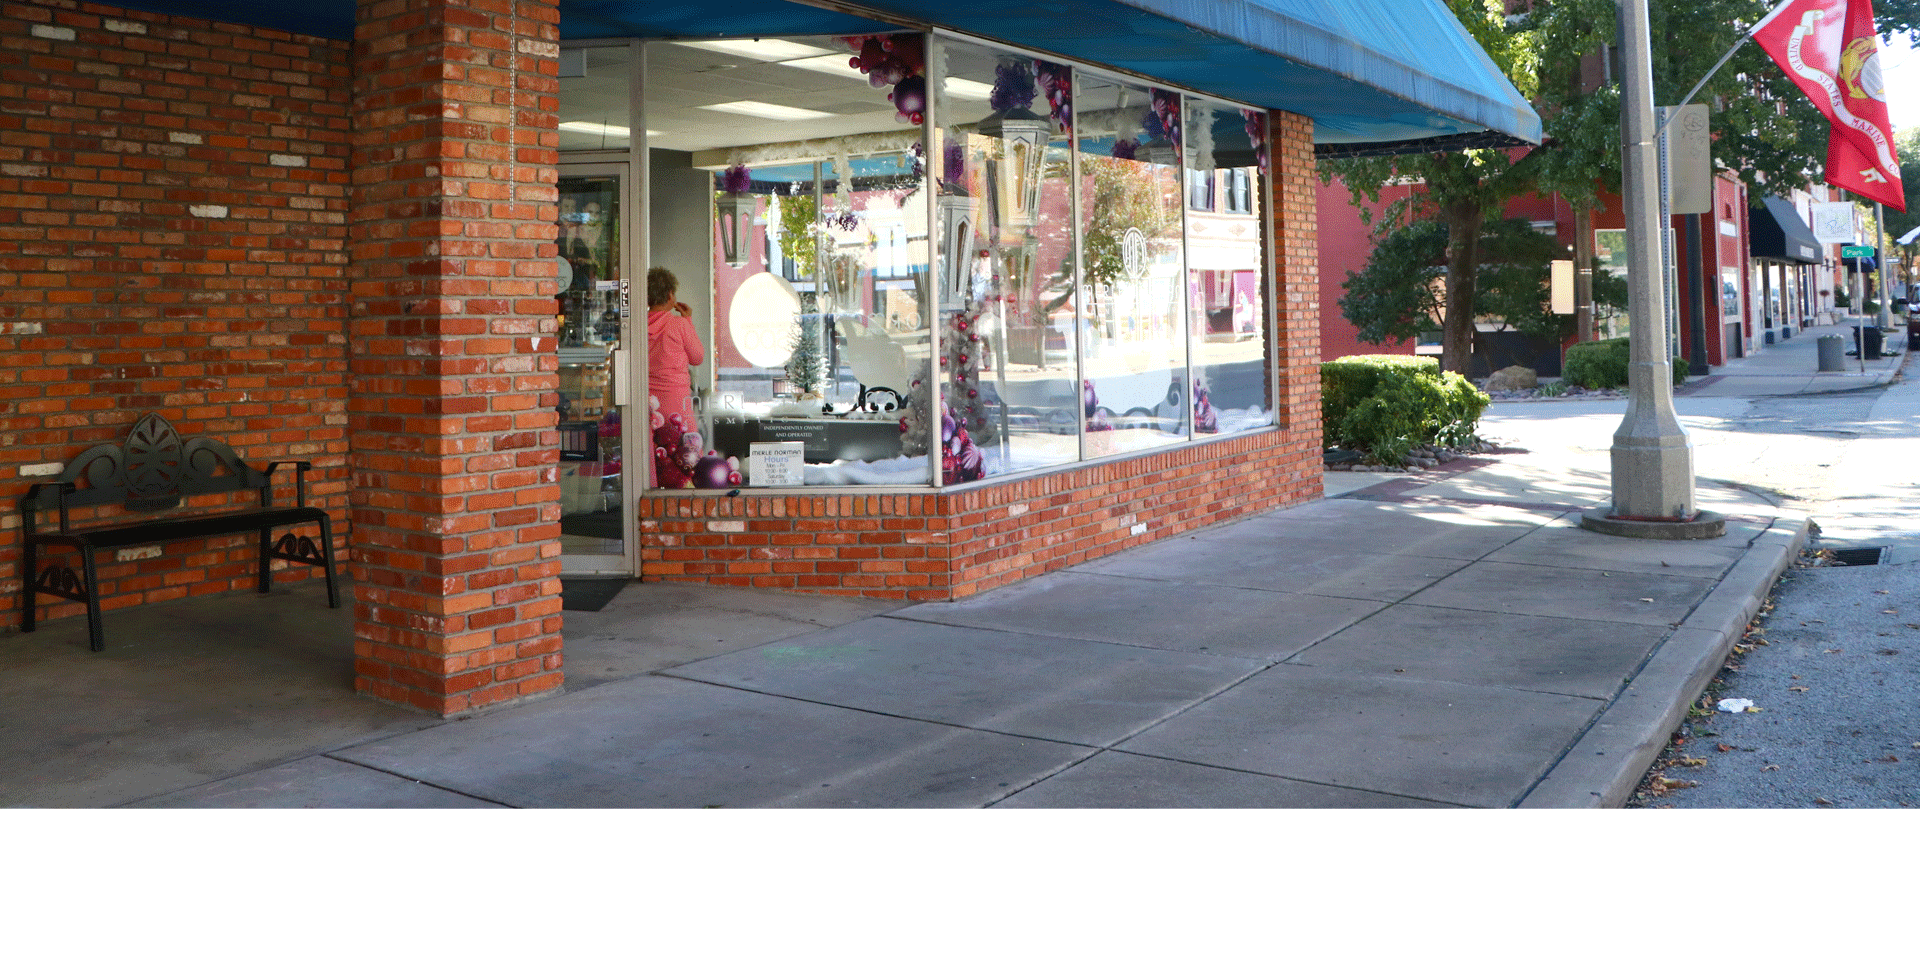 Visit Merle Norman Cosmetics and Day Spa on historic Route 66!